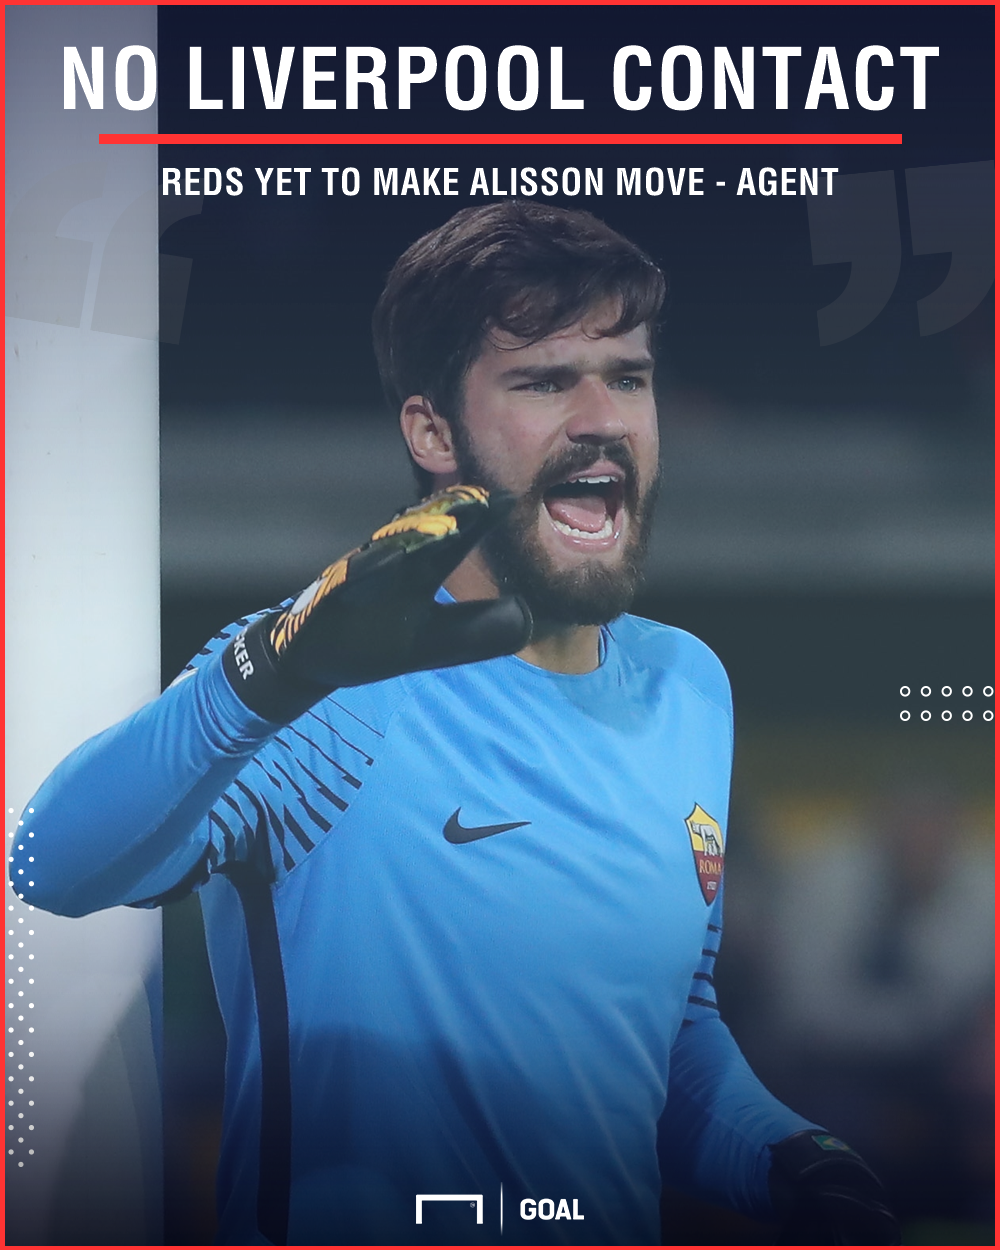 Alisson no Liverpool contact